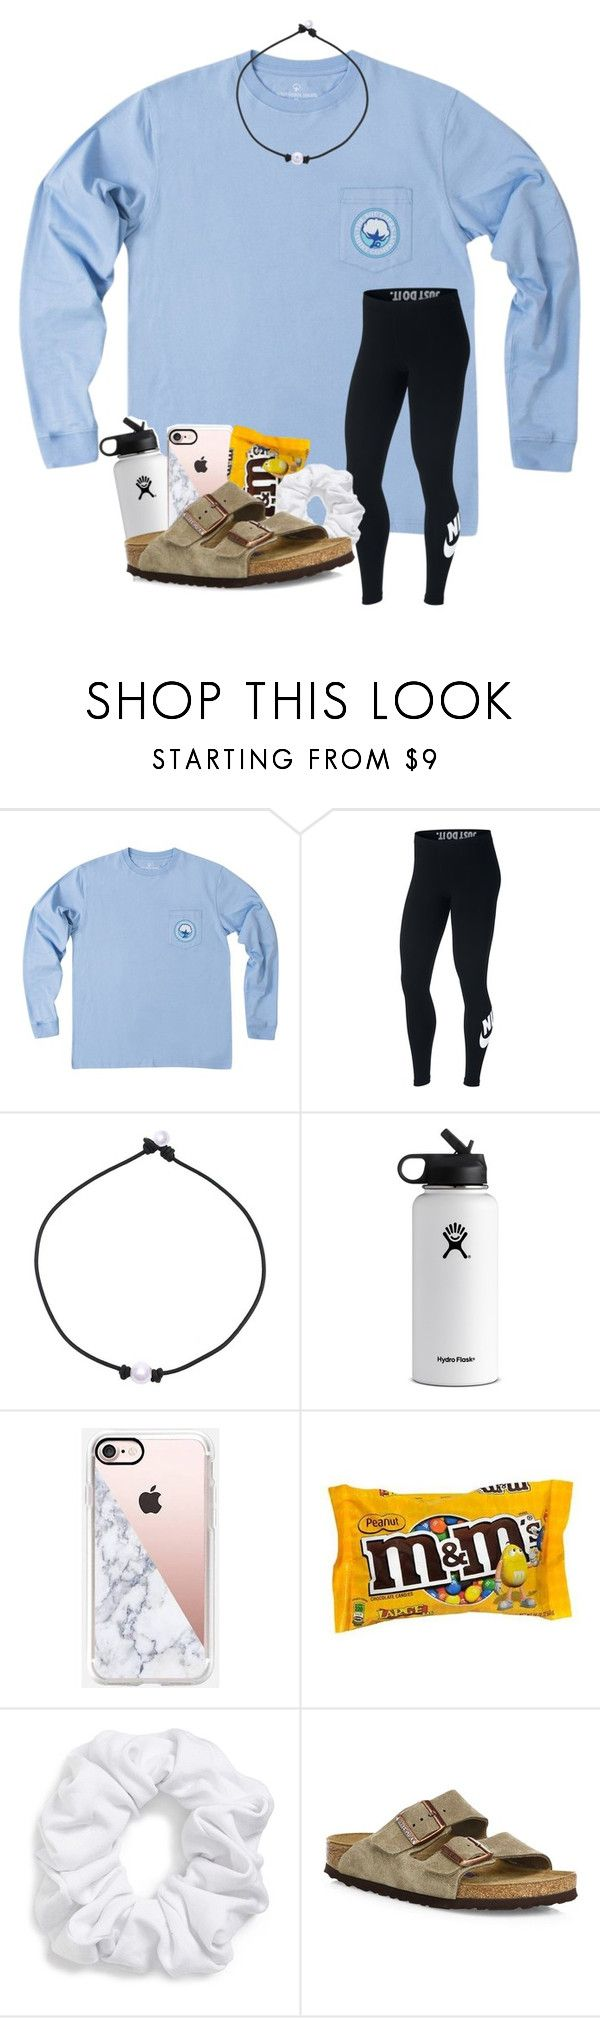 """I swear I use Birks in every outfit"" by magsvolleyball2 ❤ liked on Polyvore featuring NIKE, Hydro Flask, Casetify, Natasha and Birkenstock"